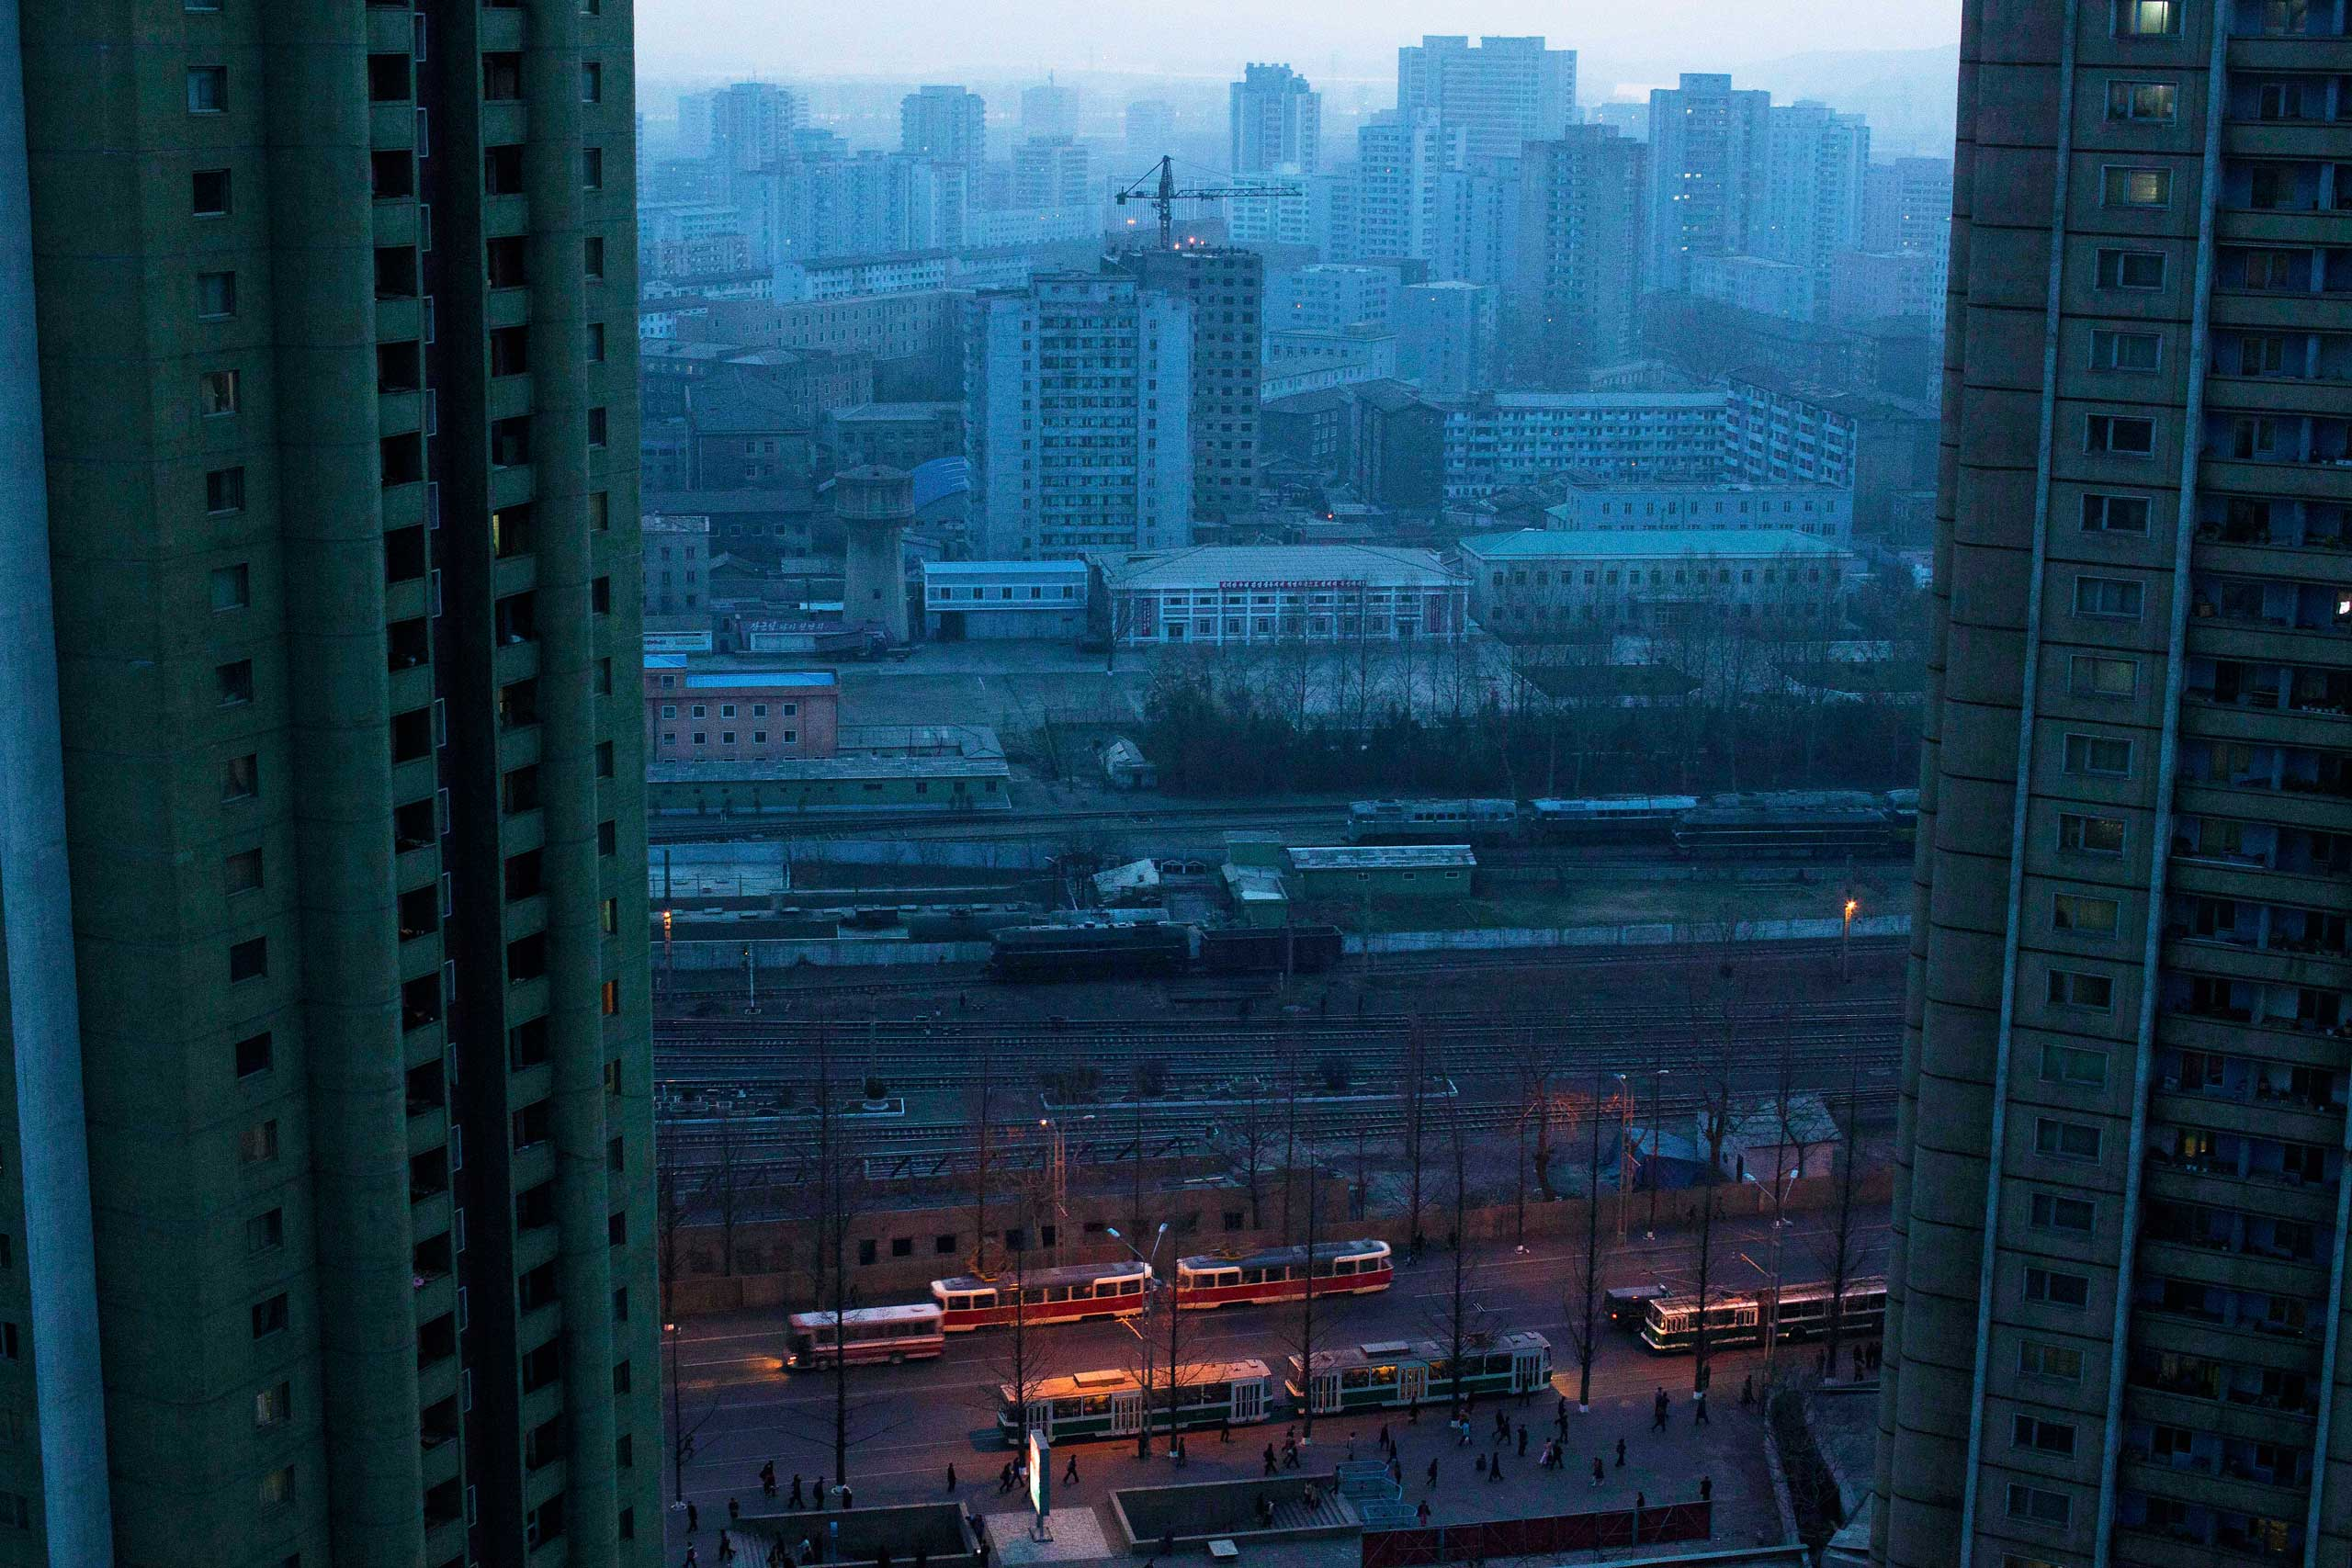 April 12, 2011. Central Pyongyang at dusk through a hotel room window.